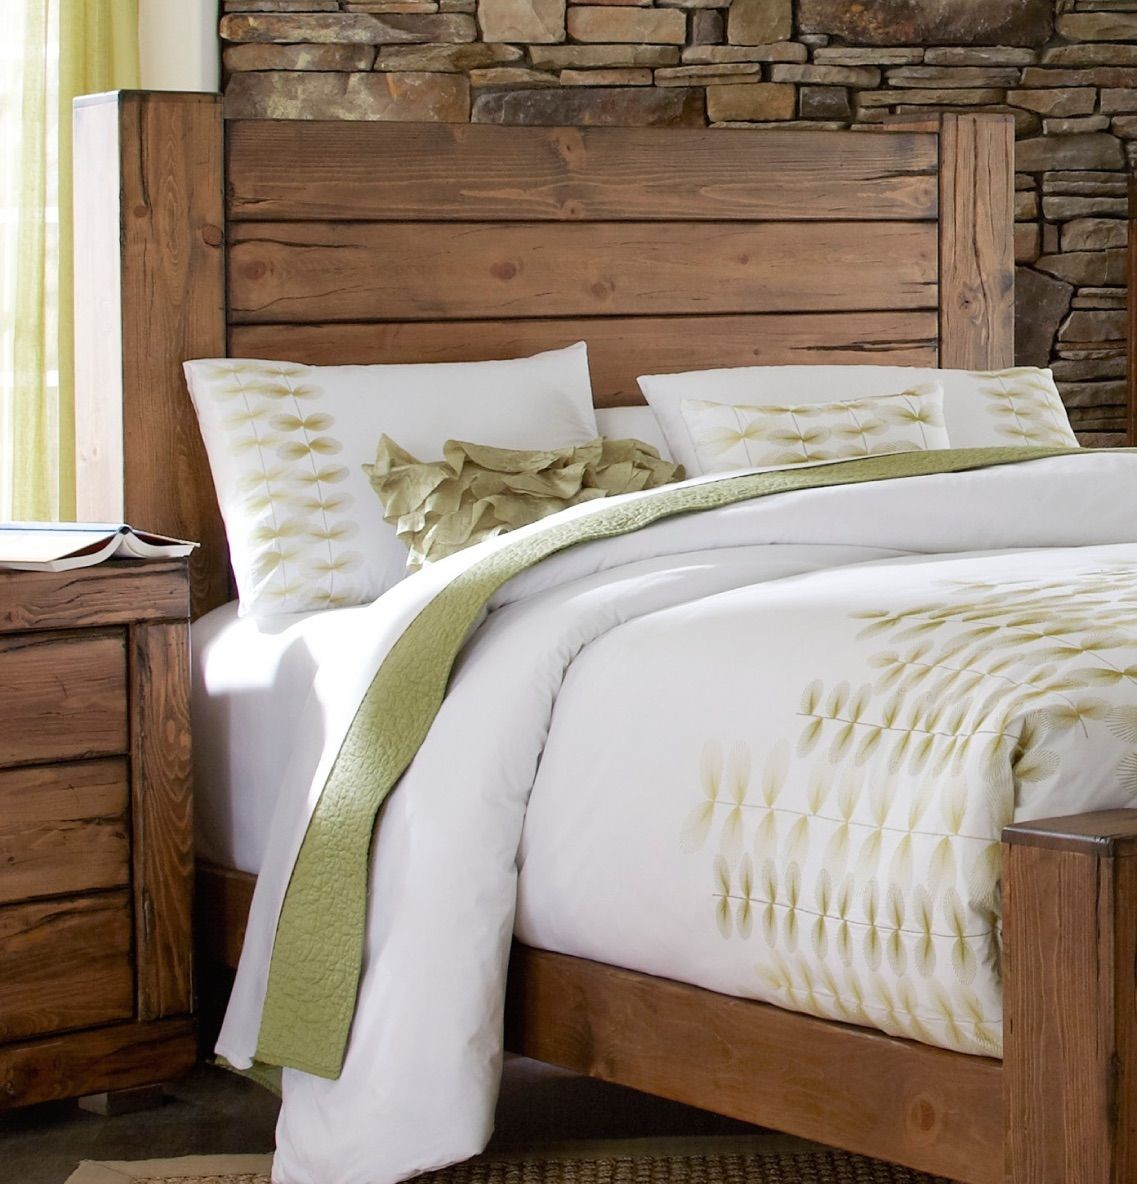 Bedroom sets coleman furniture - Maverick Driftwood Panel Bedroom Set